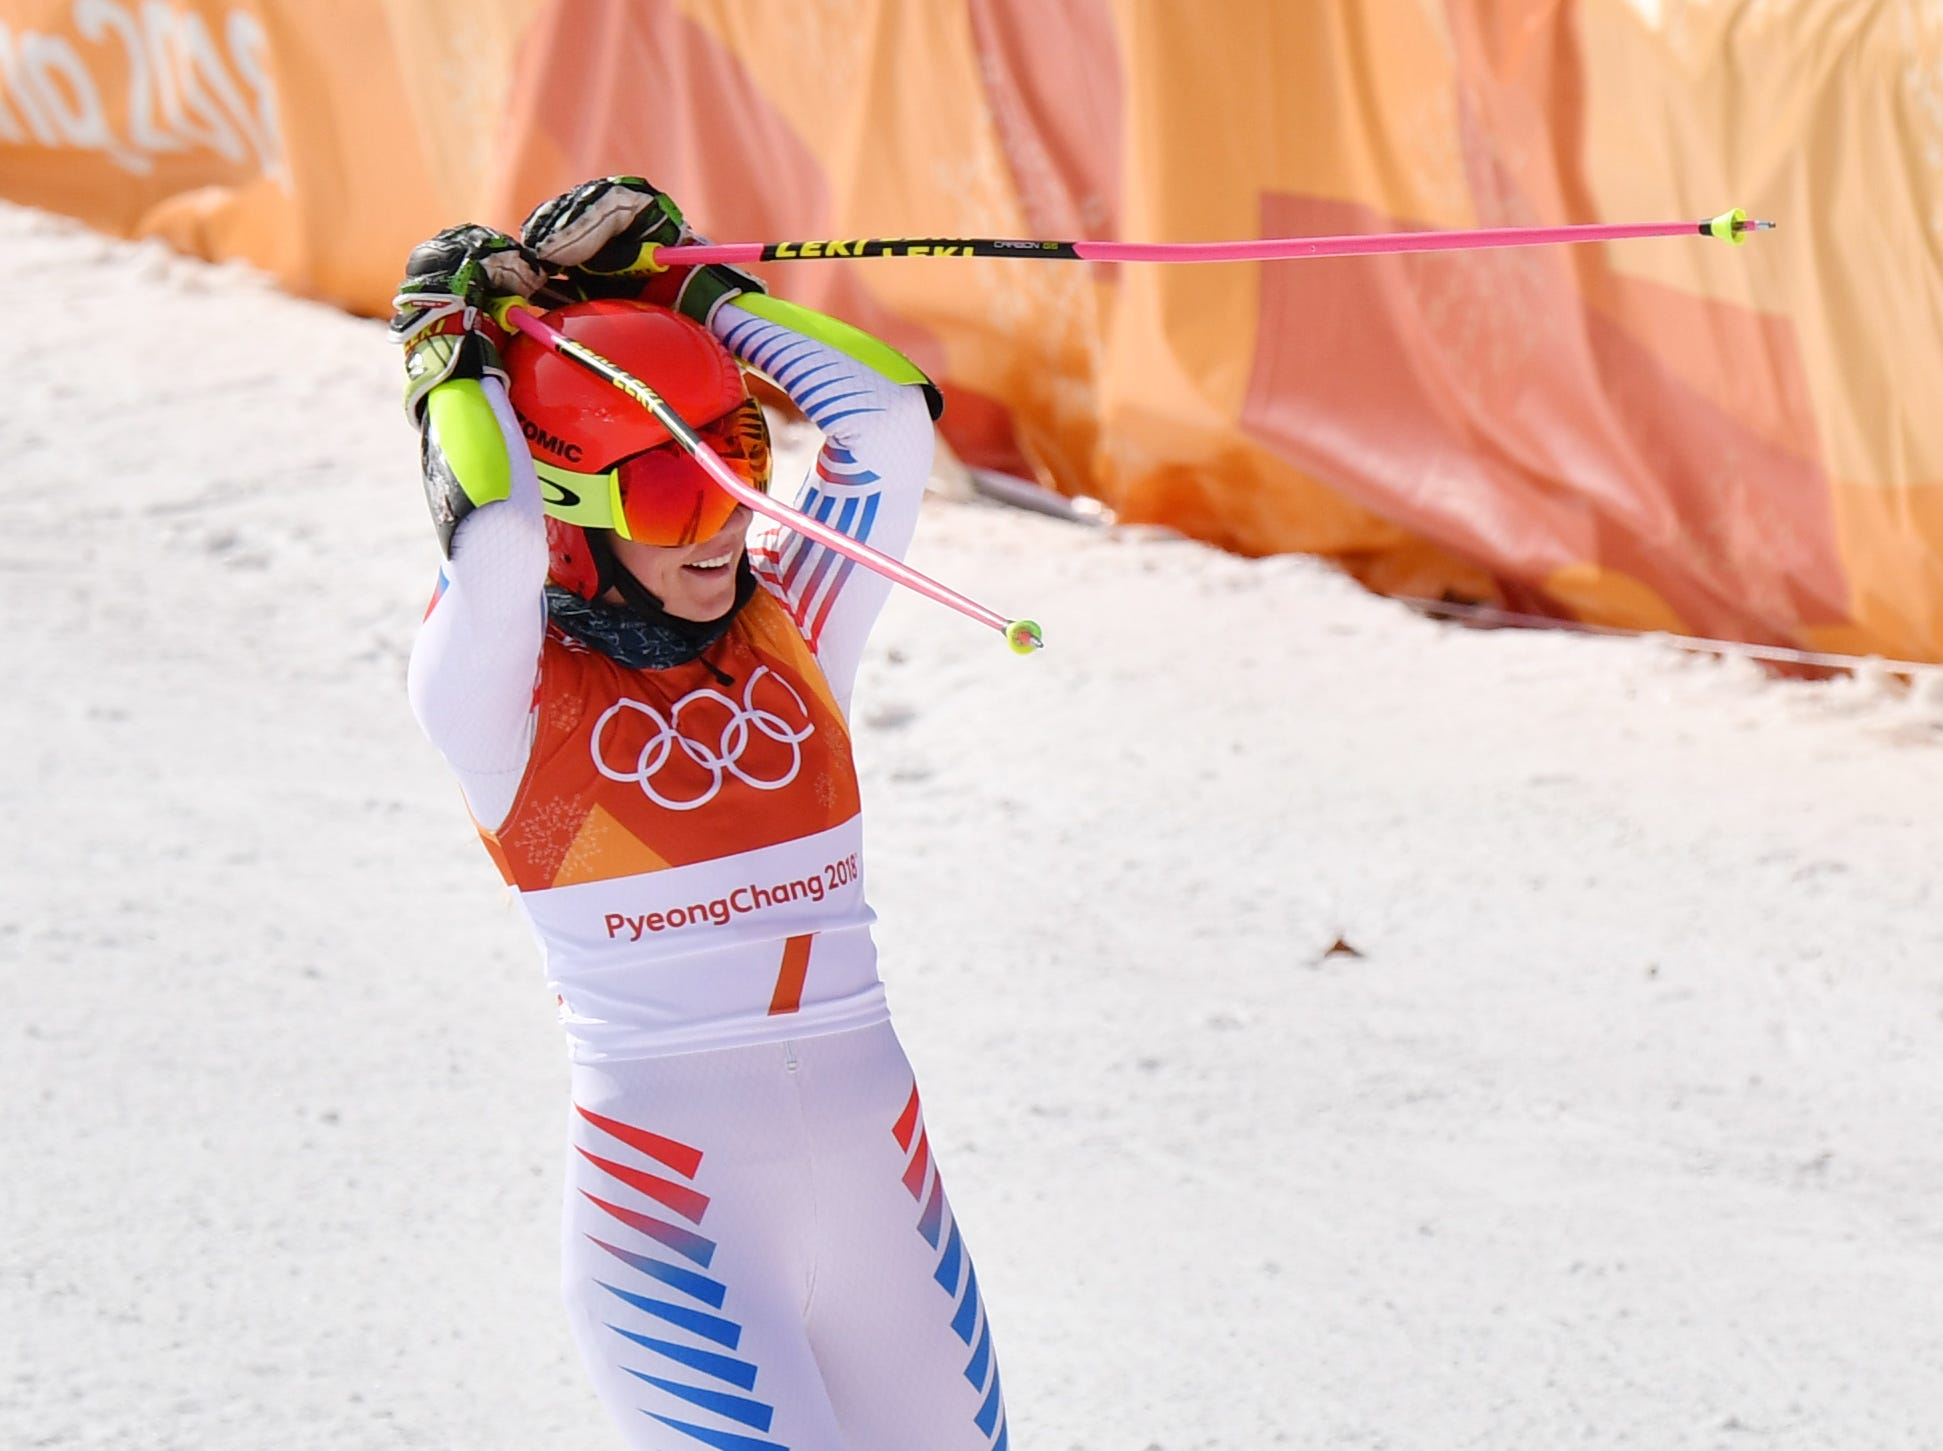 Feb. 15: Mikaela Shiffrin (USA) celebrates in the finish area after the second run of the women's alpine skiing giant slalom in Pyeongchang. She took gold in the event.